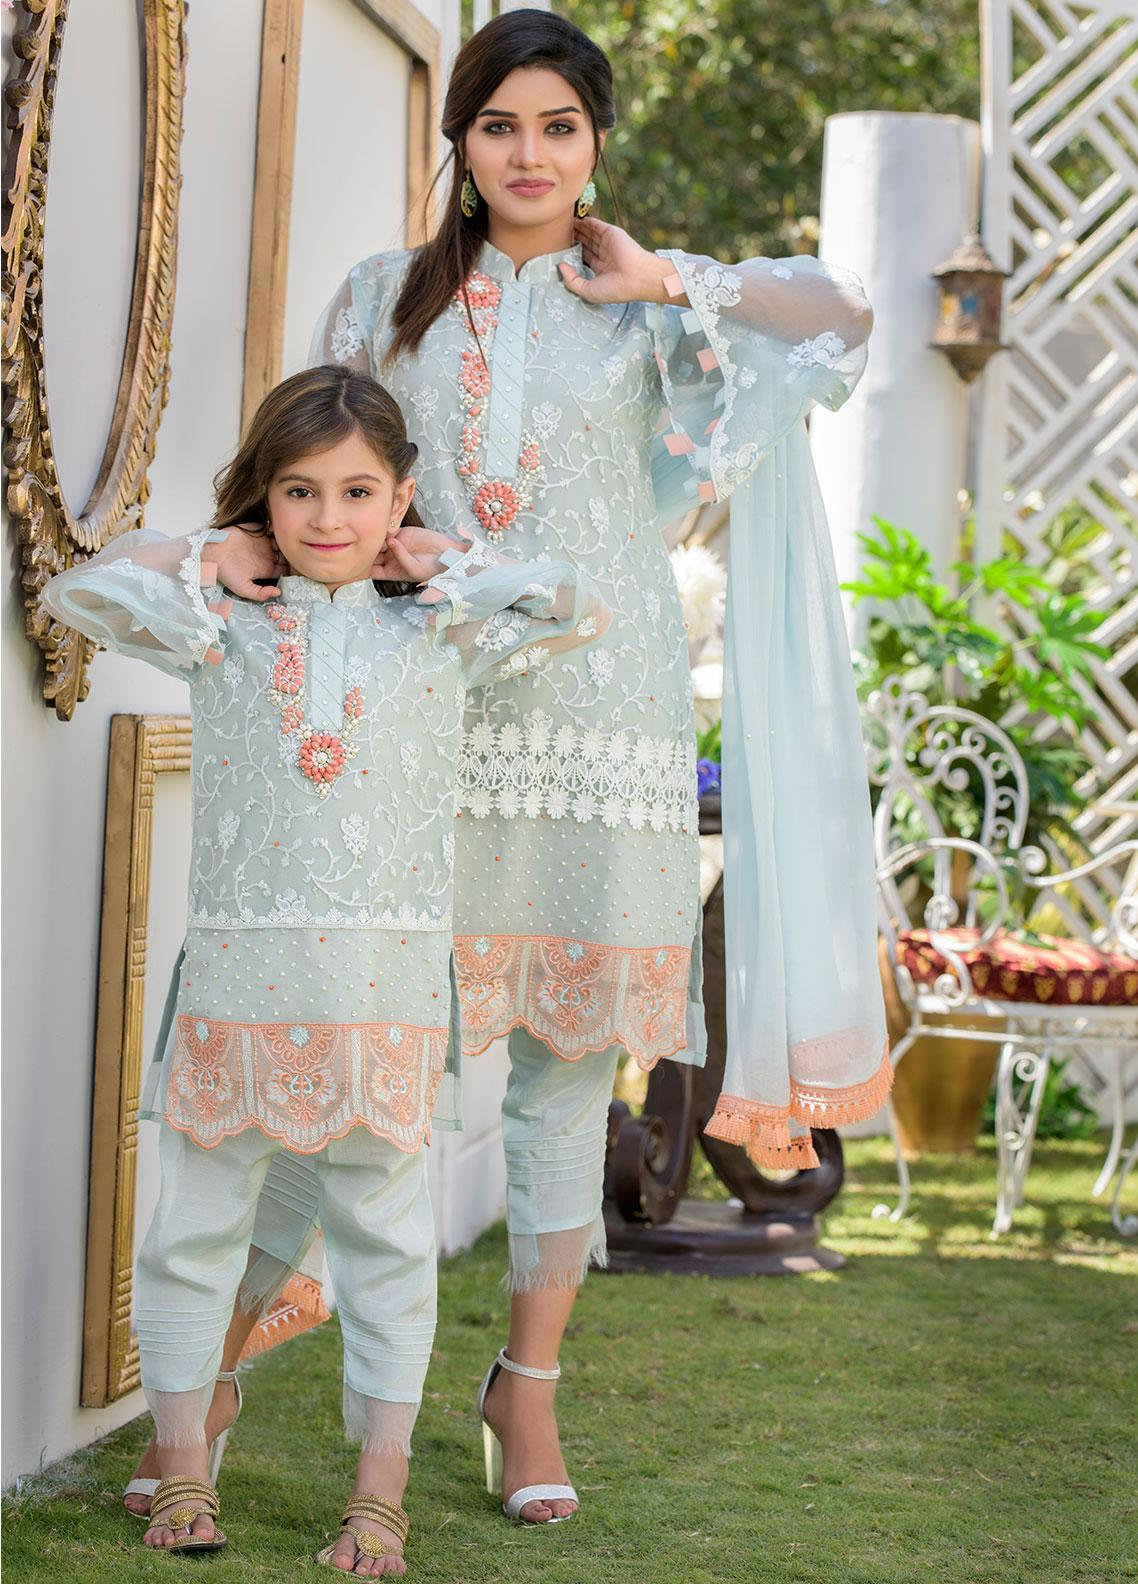 Chic Ophicial Organza Formal Girls 2 Piece Suit -  CH12 Ice Blue Eden